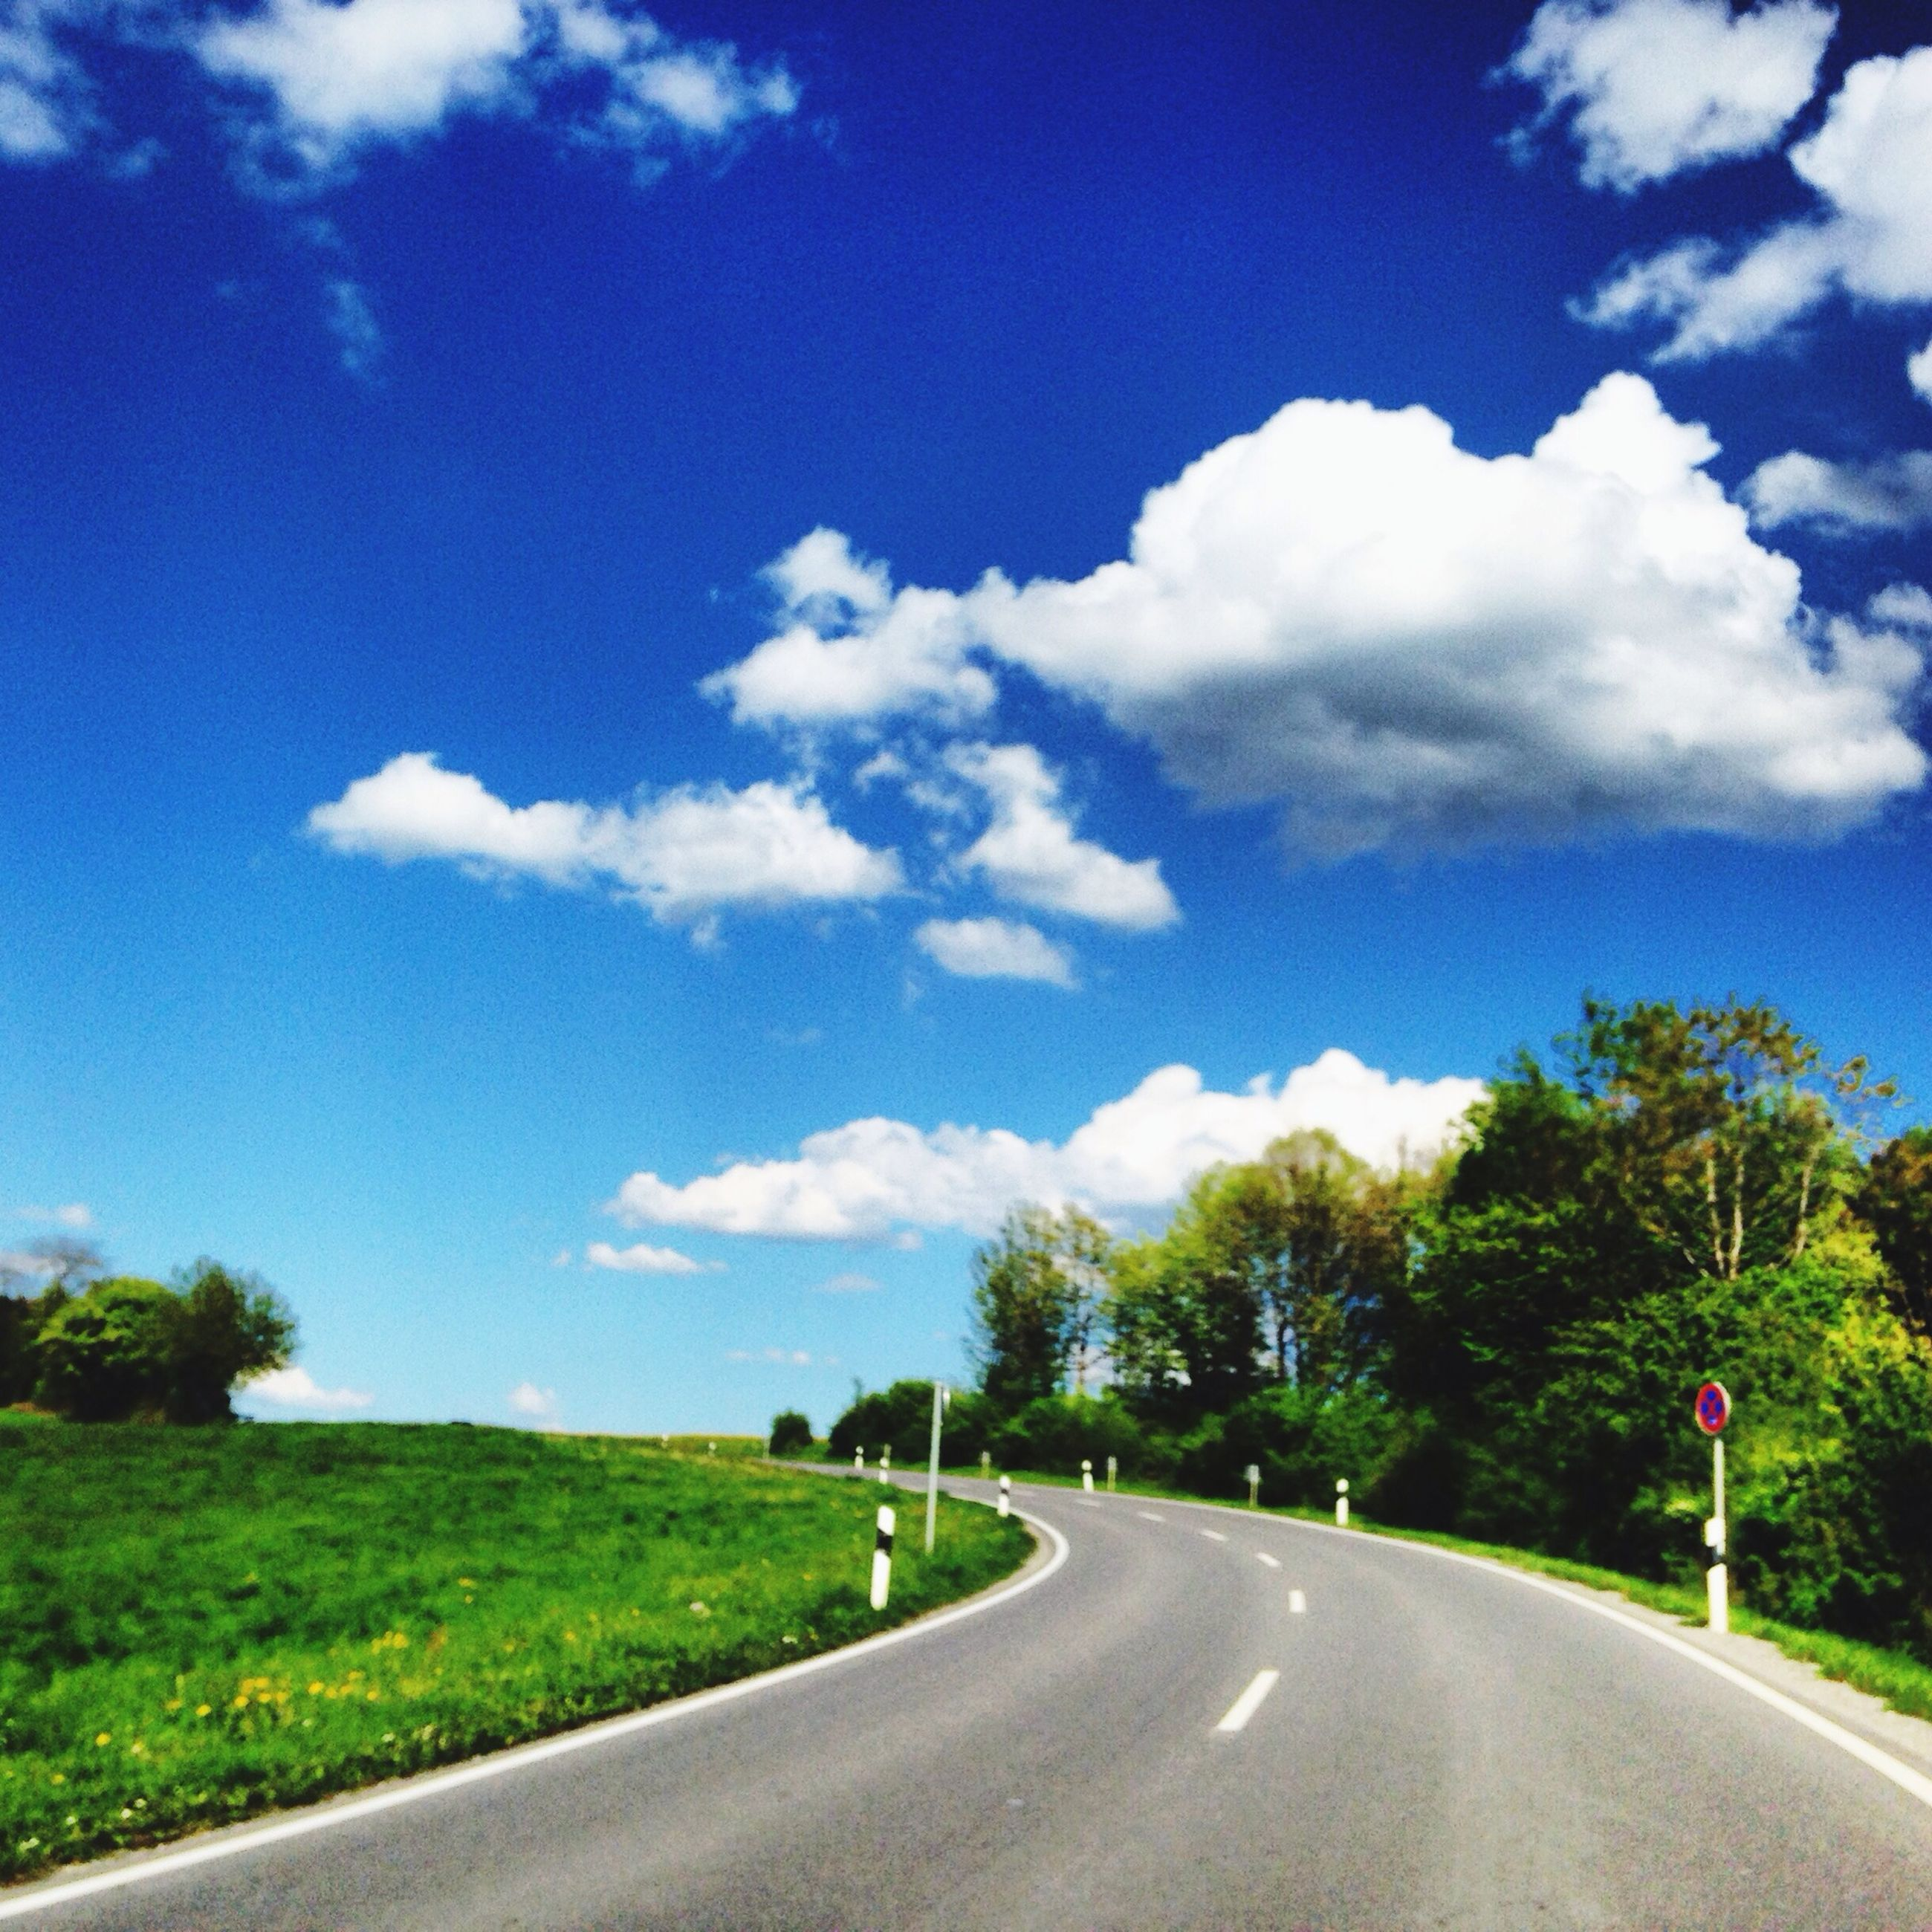 the way forward, road, sky, diminishing perspective, tree, transportation, country road, vanishing point, road marking, tranquility, tranquil scene, cloud - sky, cloud, grass, landscape, empty road, blue, empty, nature, long